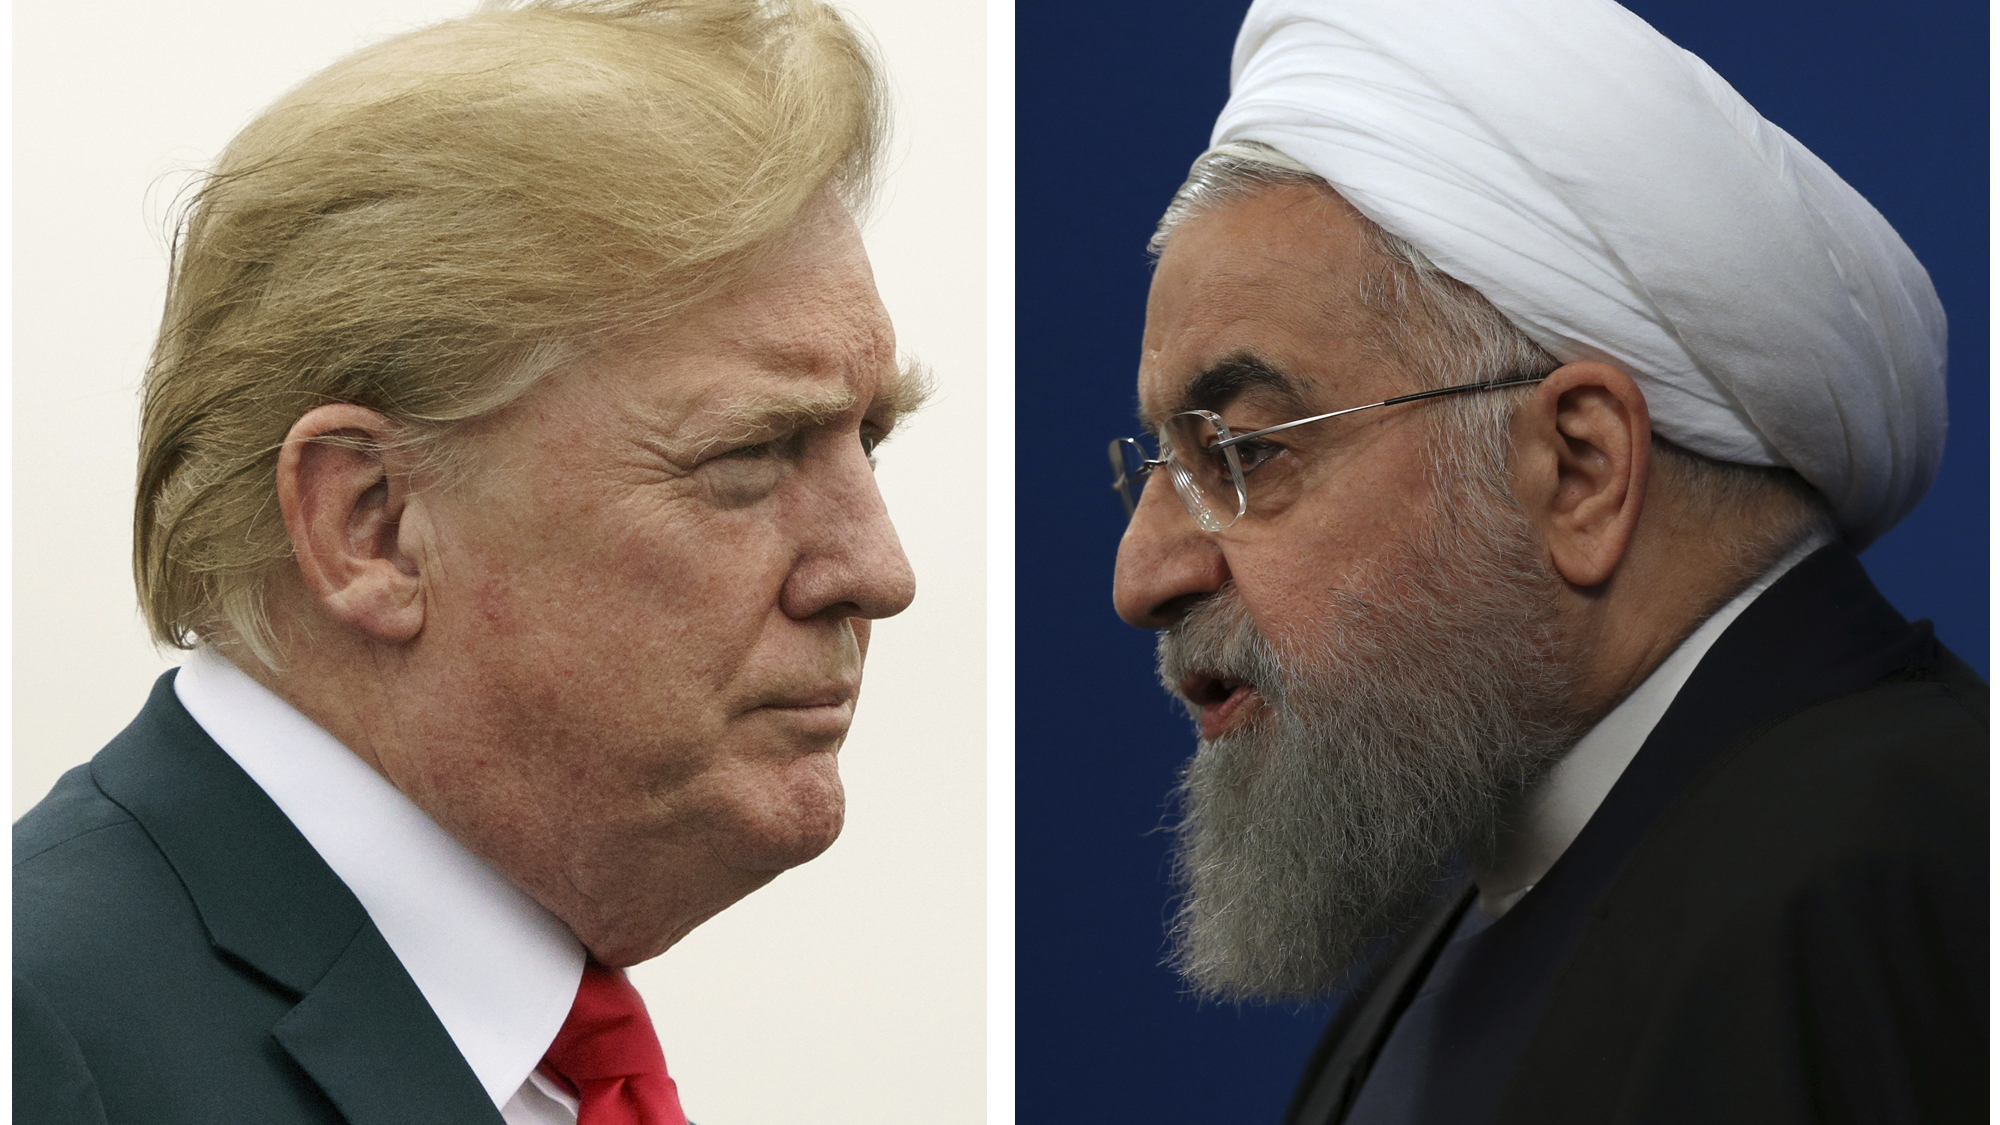 Trump Sends Rouhani Dire Warning, All Caps